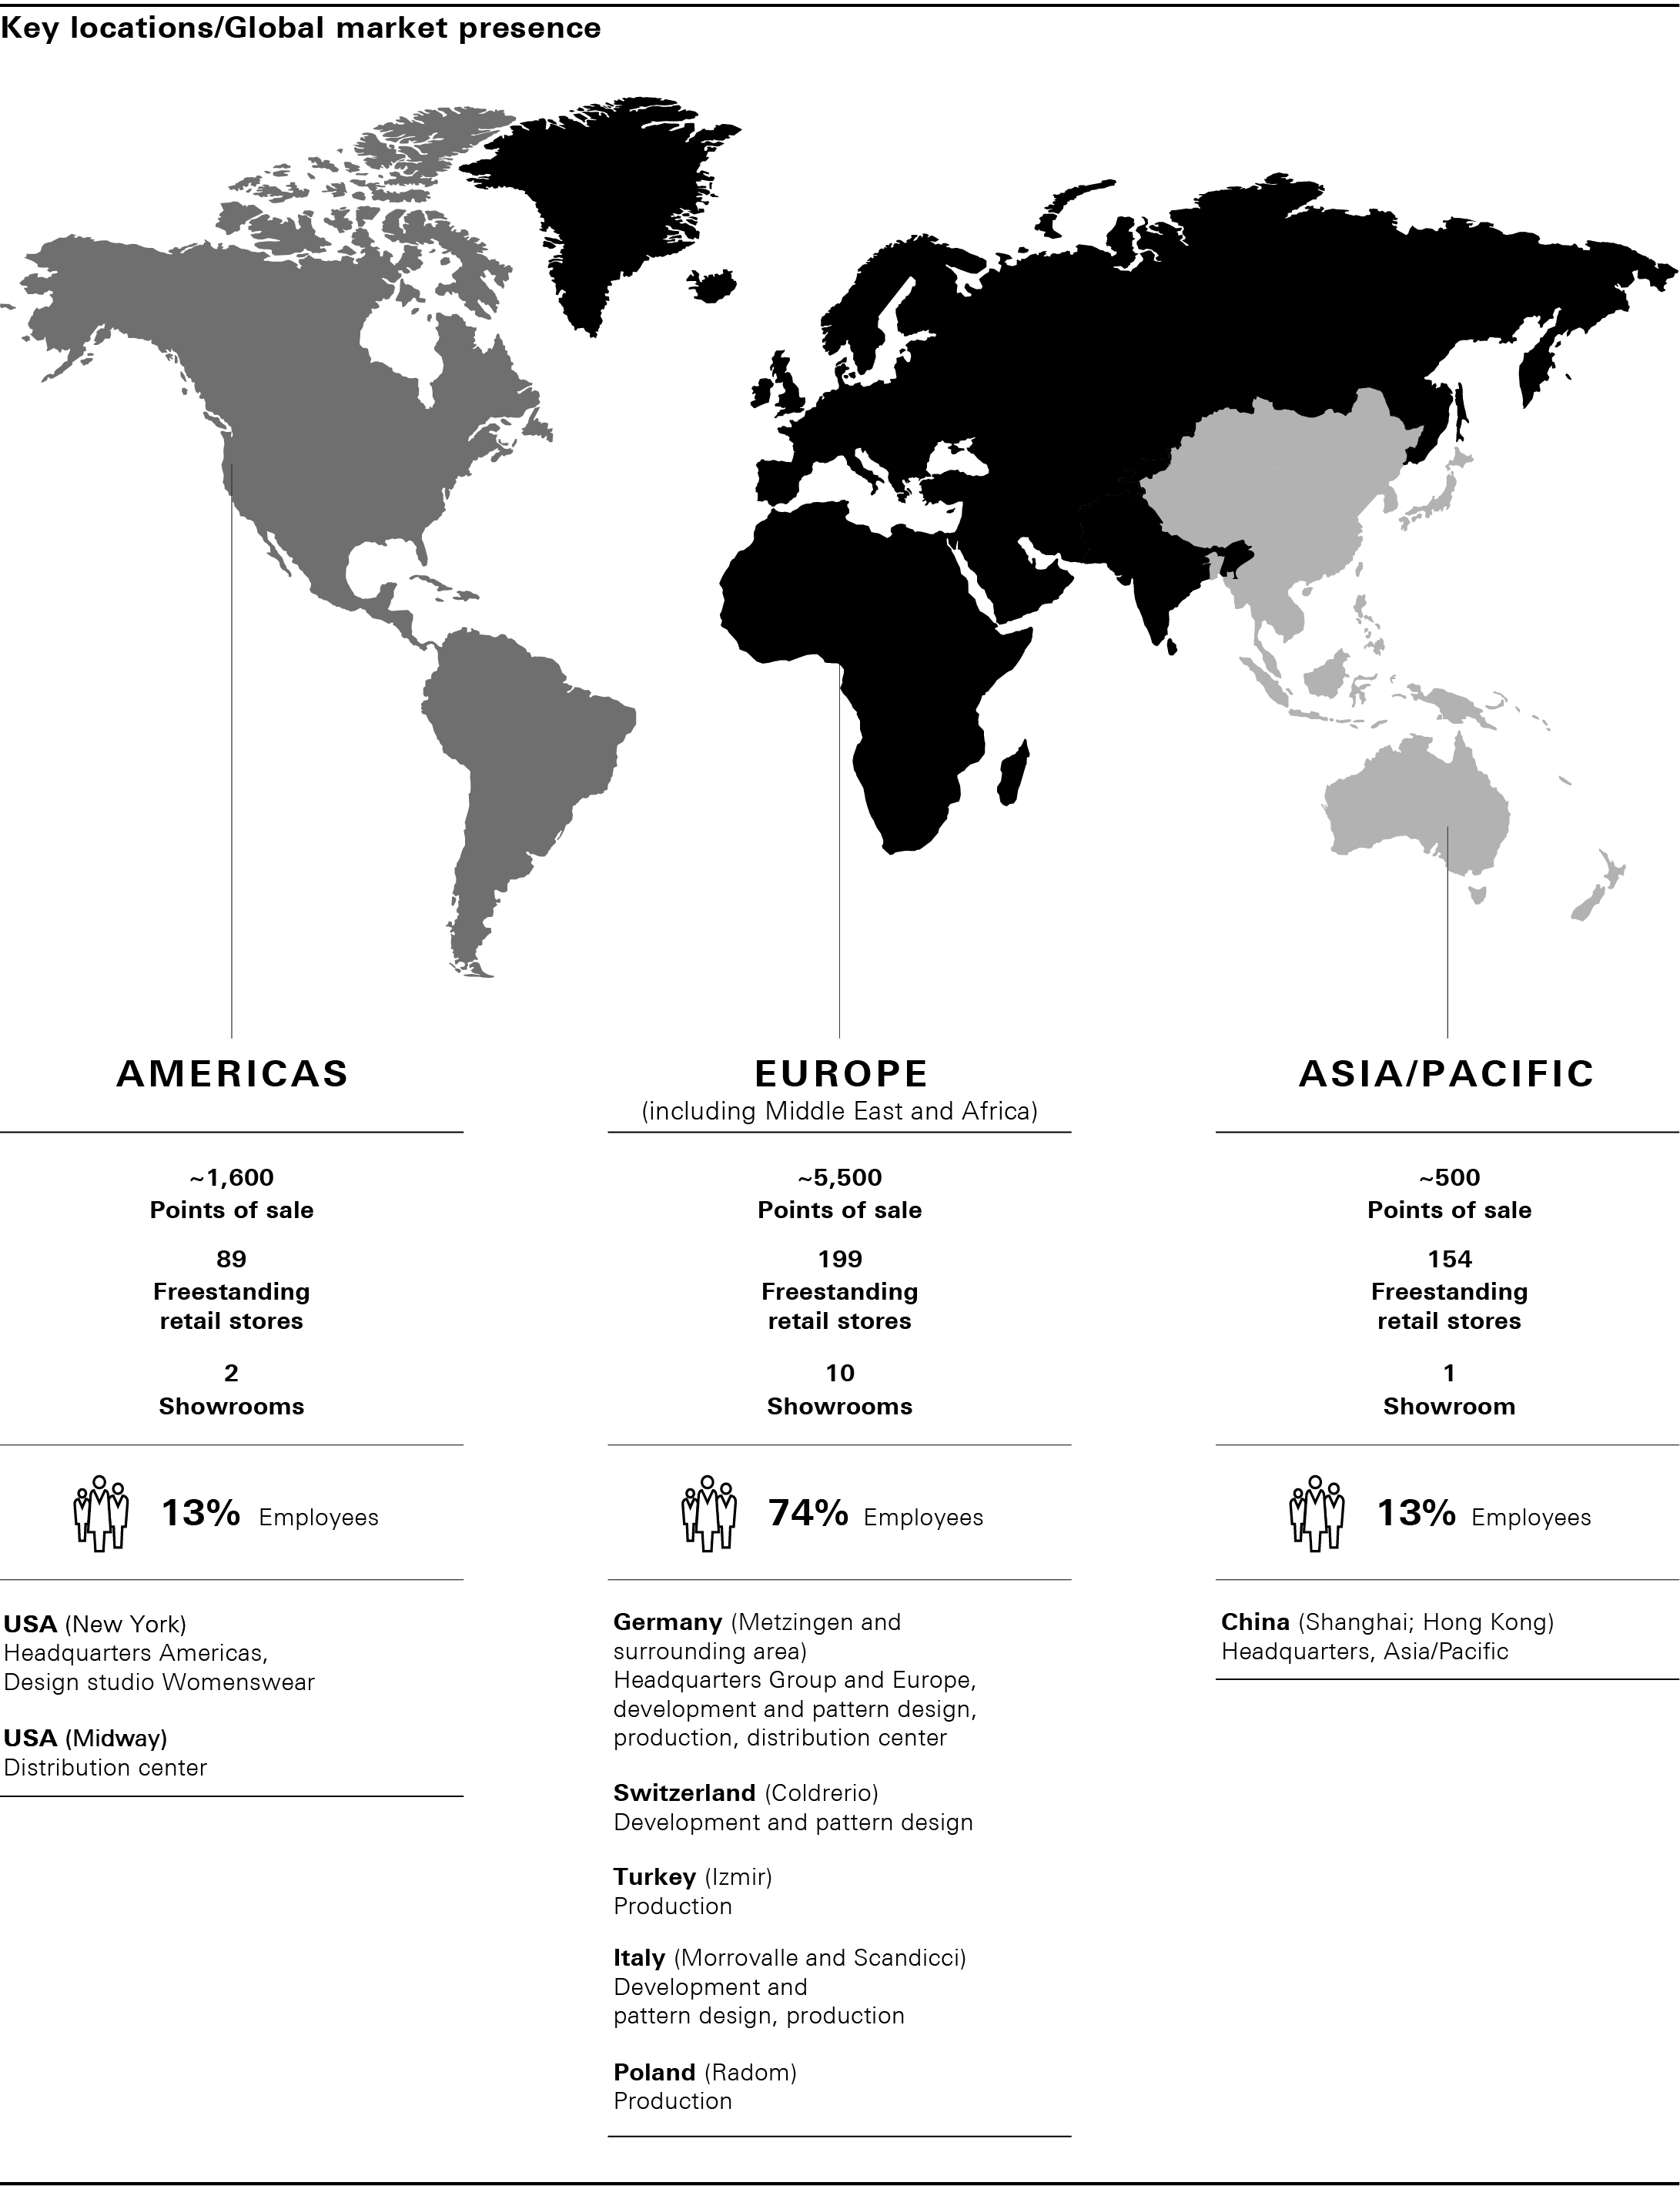 Key locations/Global market presence (graphic)